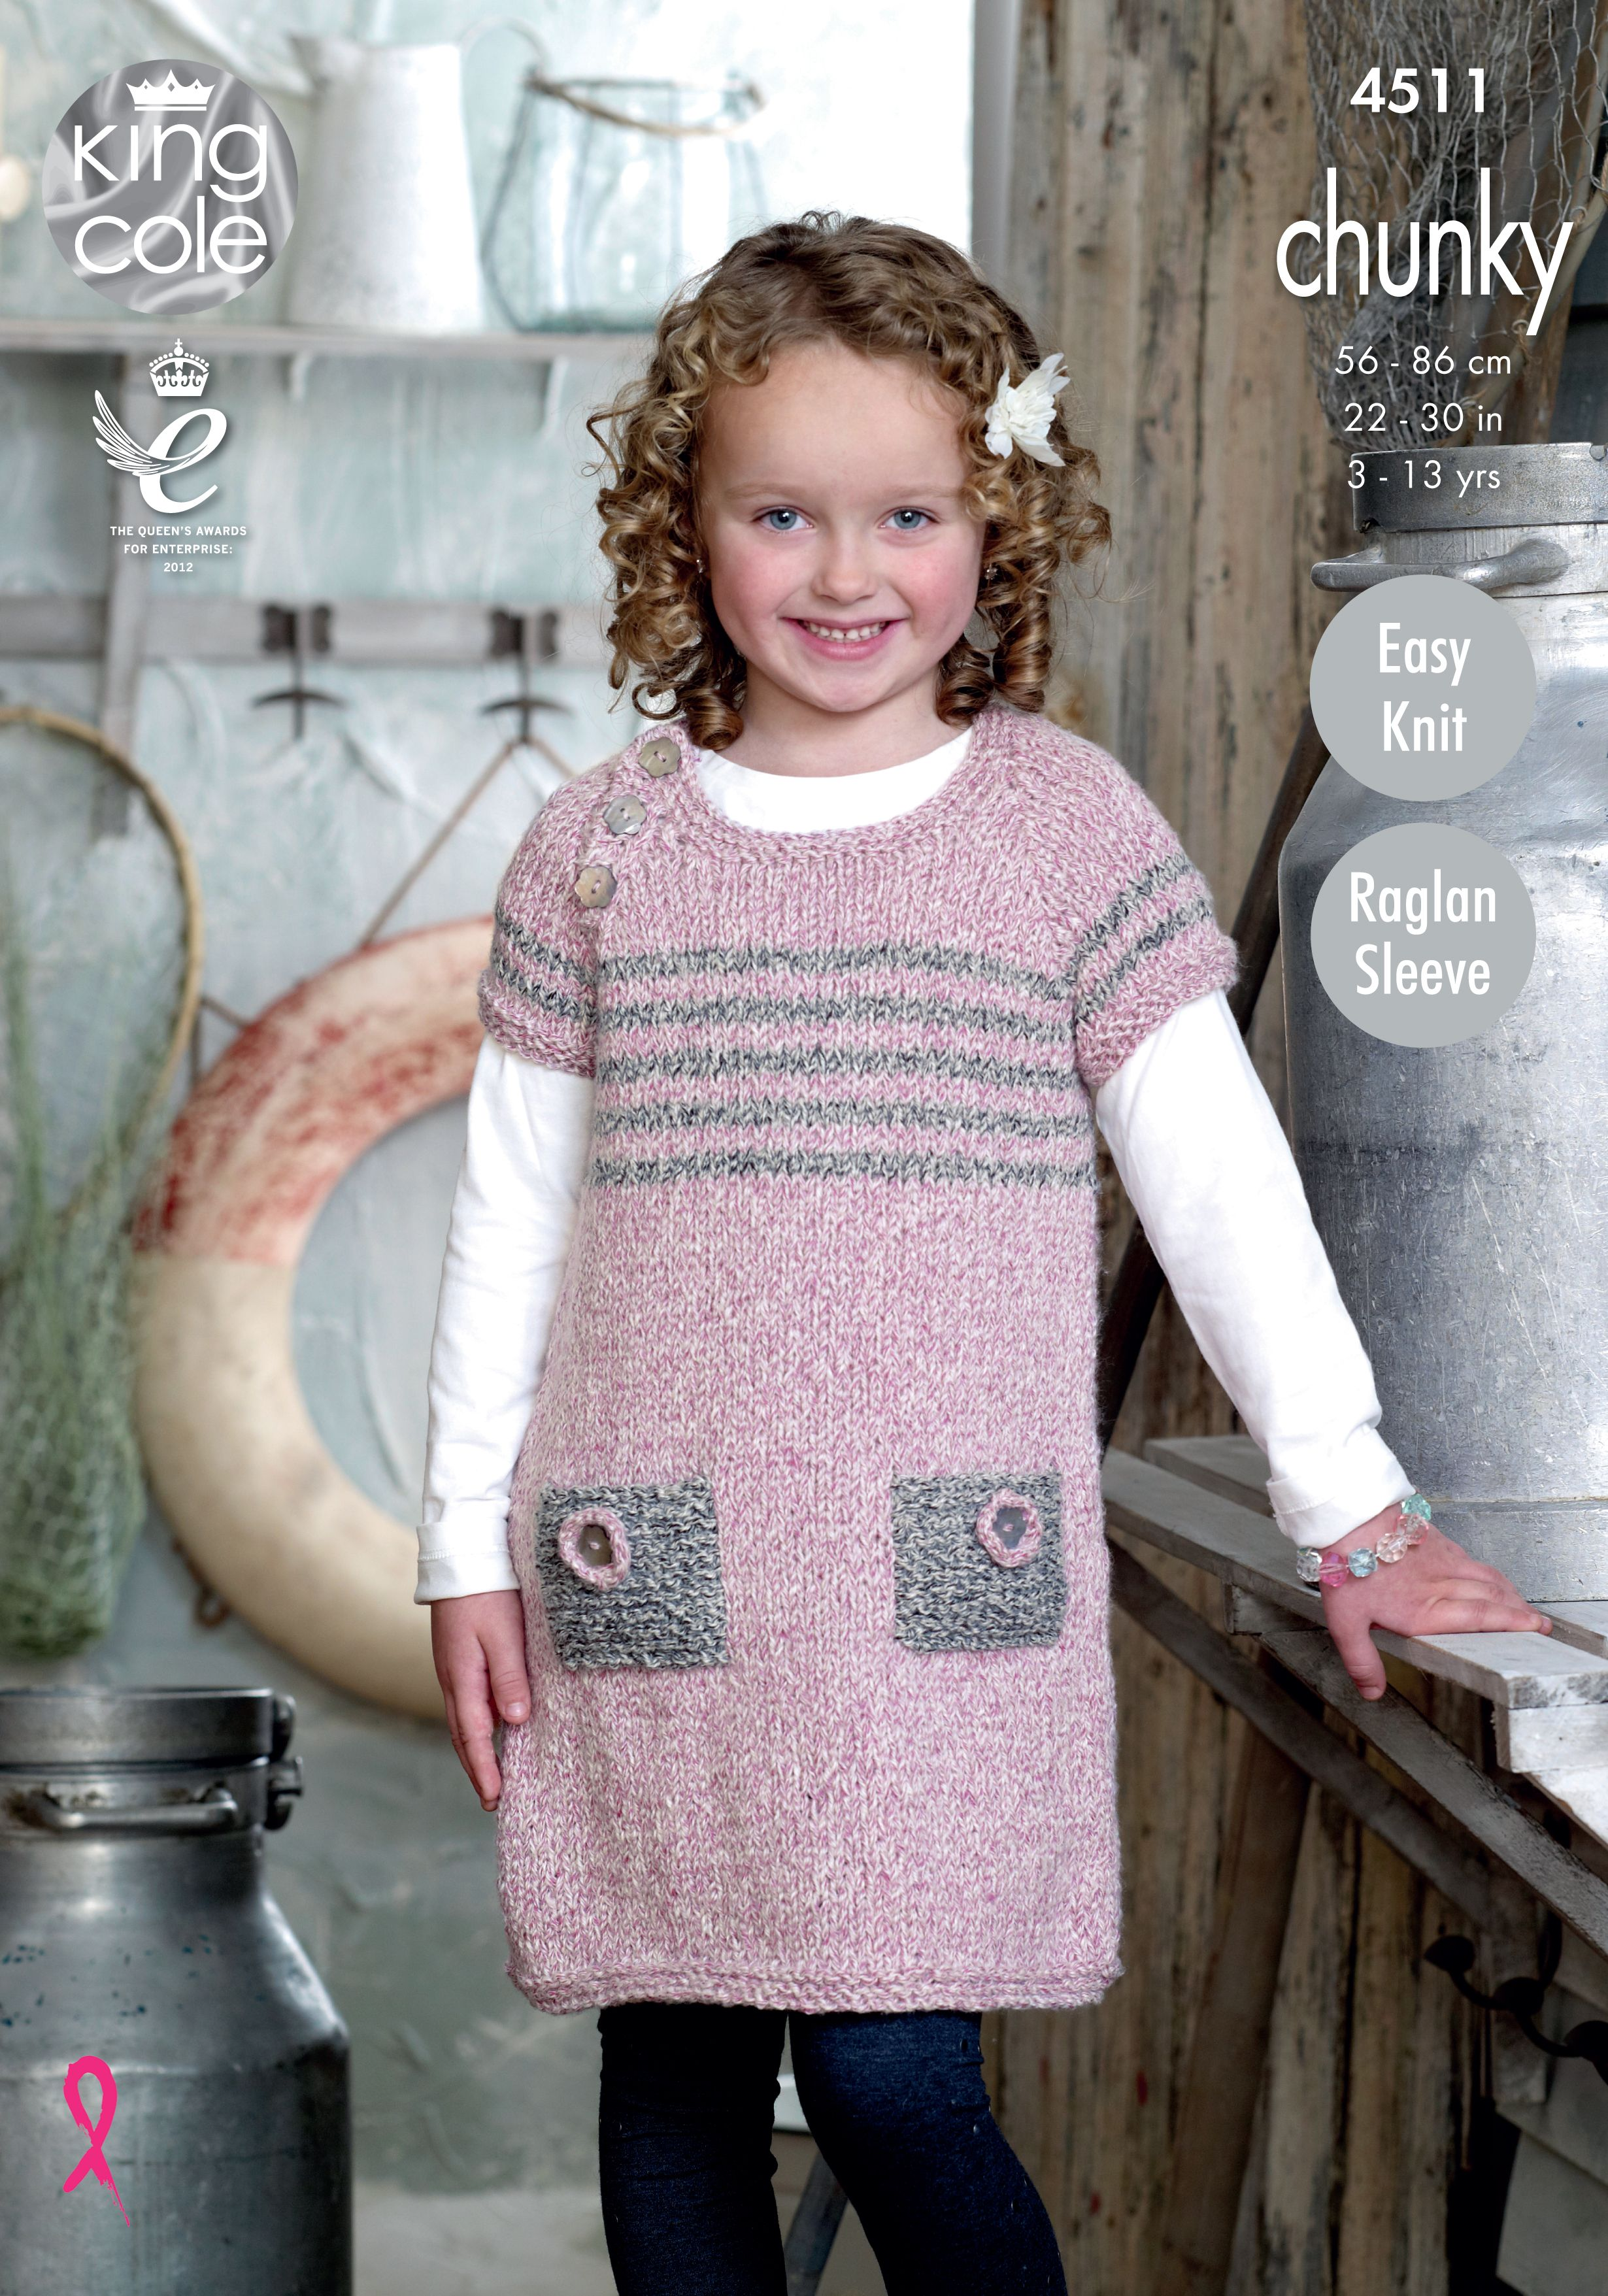 c3c8859472d080 Childrens knitted tunic pattern. Authentic chunky soft marl shade - King  Cole